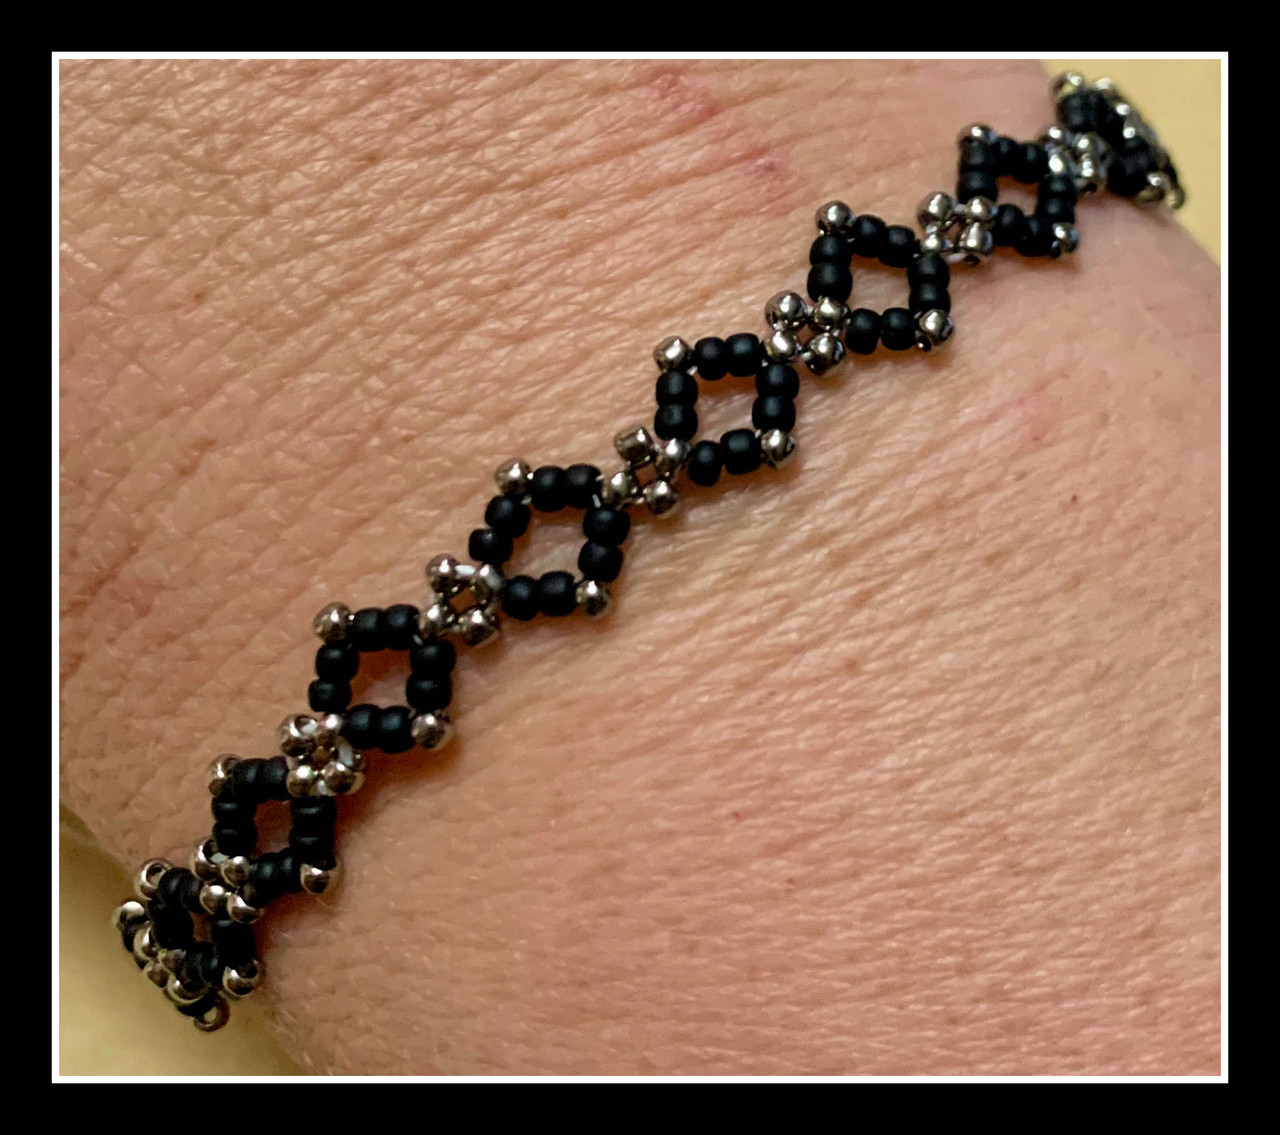 RAW Diamond Bracelet PRINTED PATTERN - Mailed to your home